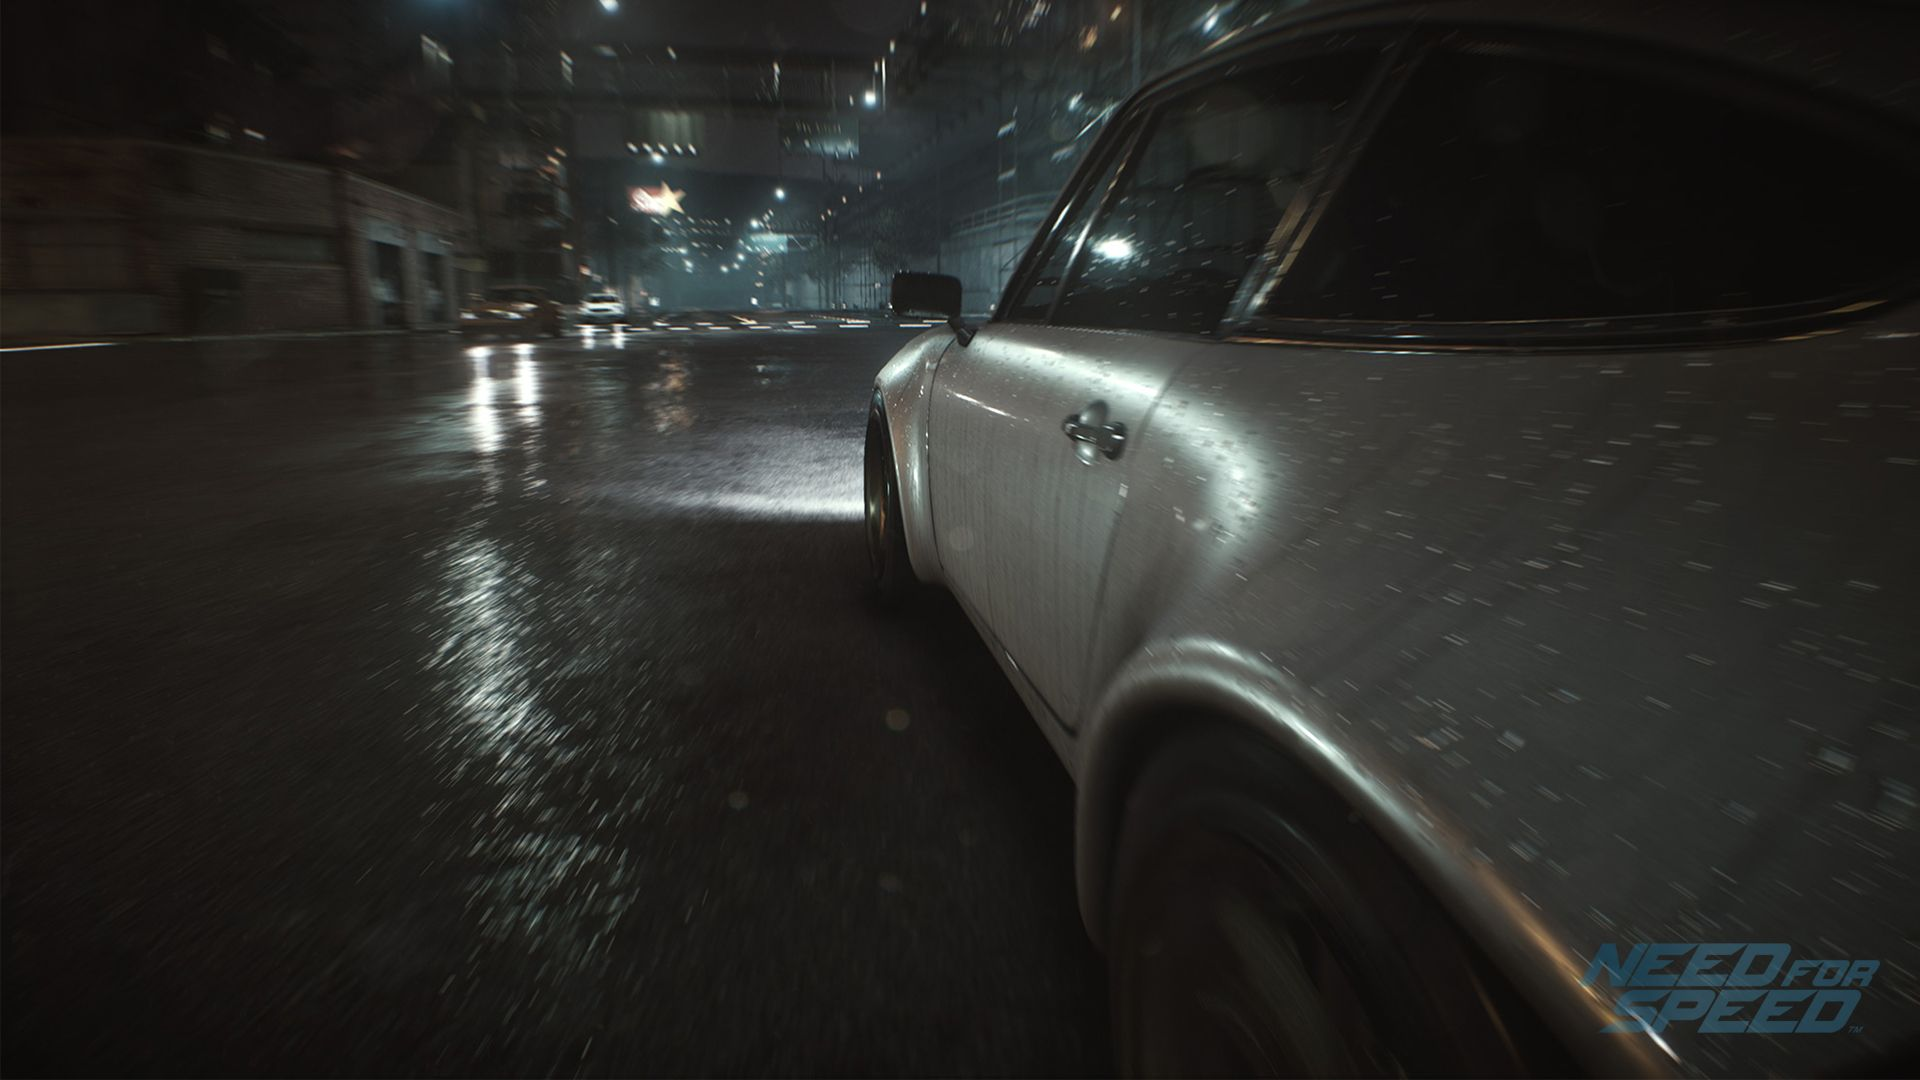 Need for Speed 2015 (PC) - 9